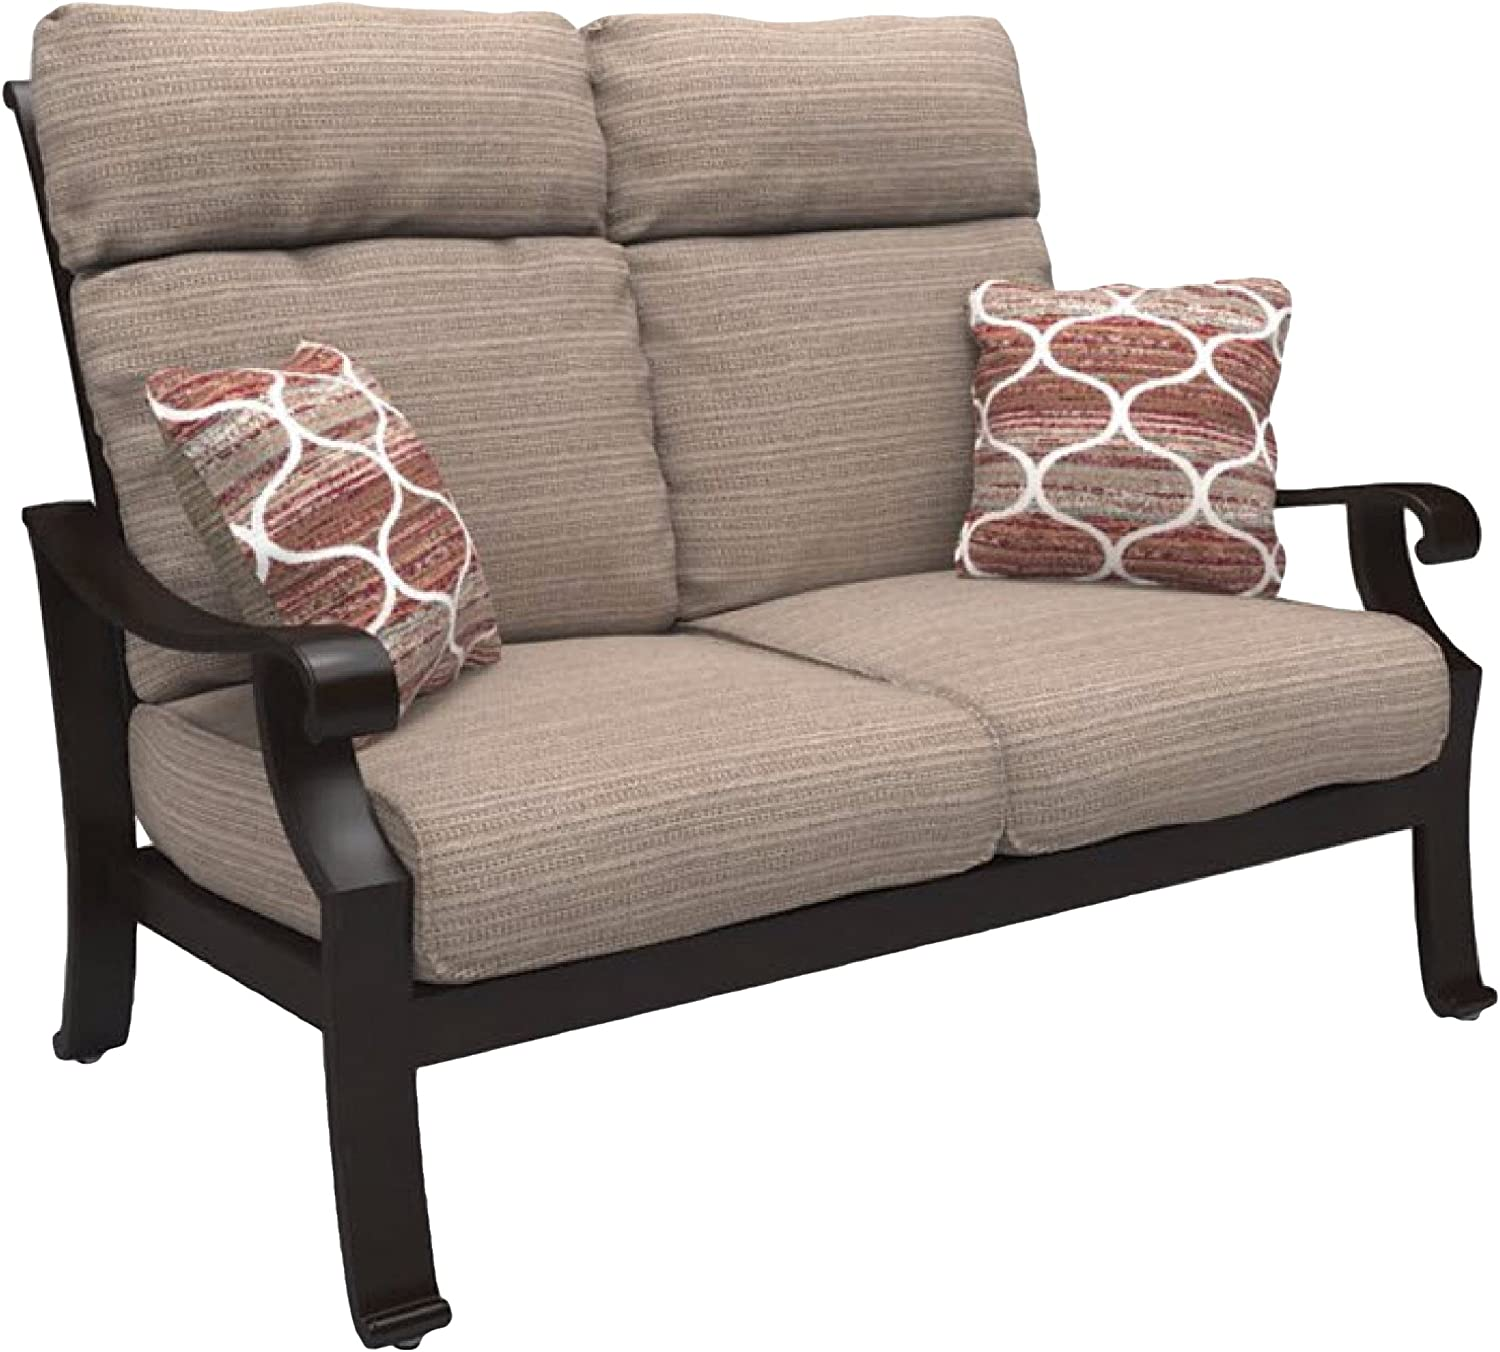 Ashley Furniture Signature Design – Chestnut Ridge Outdoor Loveseat with Cushion – Brown